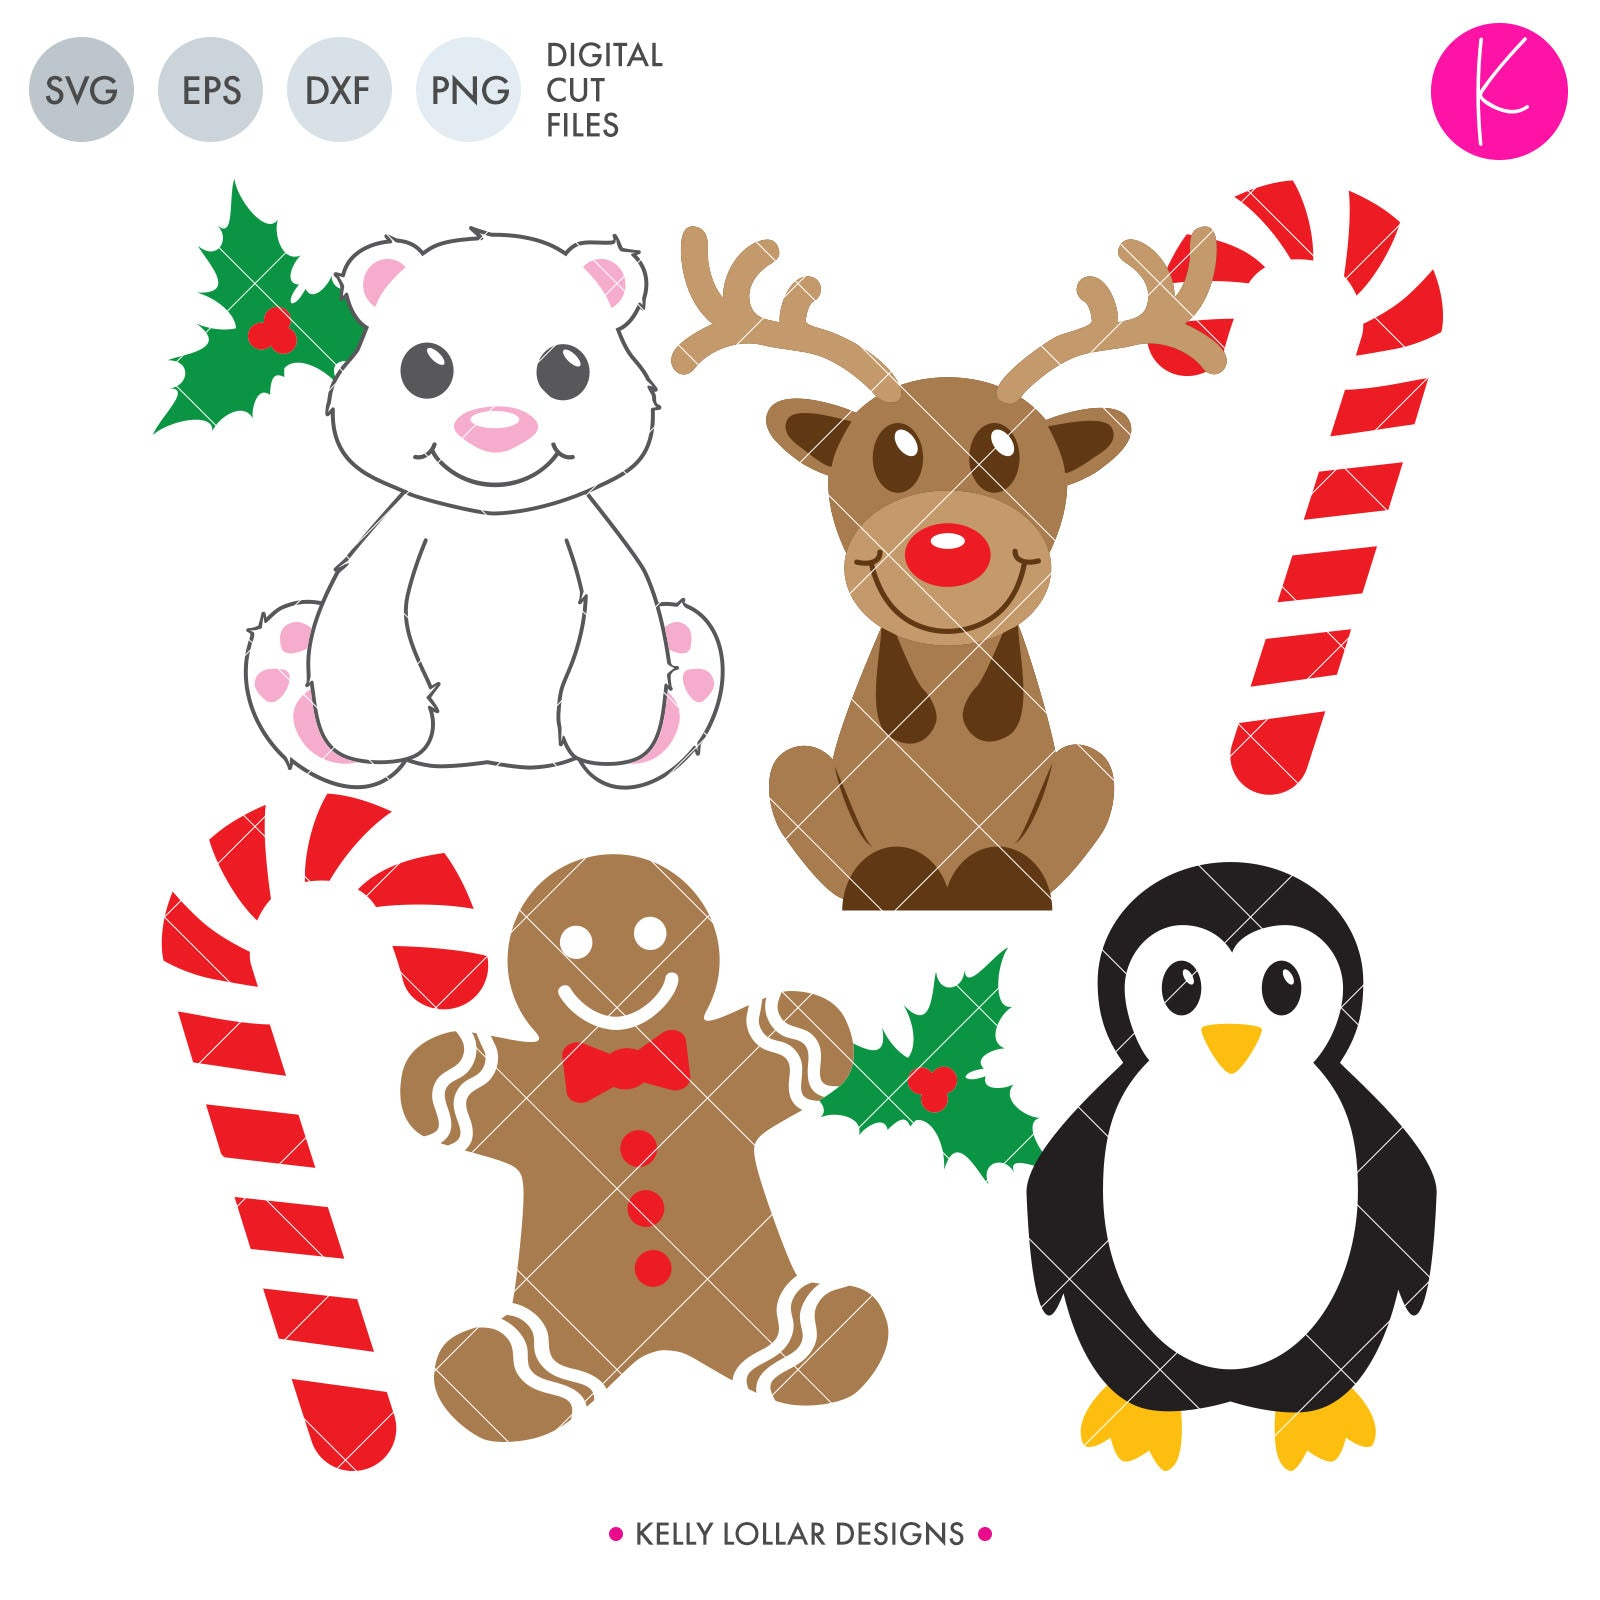 Christmas Animals SVG Cut Files Collection of 4 Christmas Themes Animals - Reindeer, Polar Bear, Penguin and Gingerbread Man - to Add to Christmas Shirts and Decor | SVG DXF PNG Cut Files Choose from